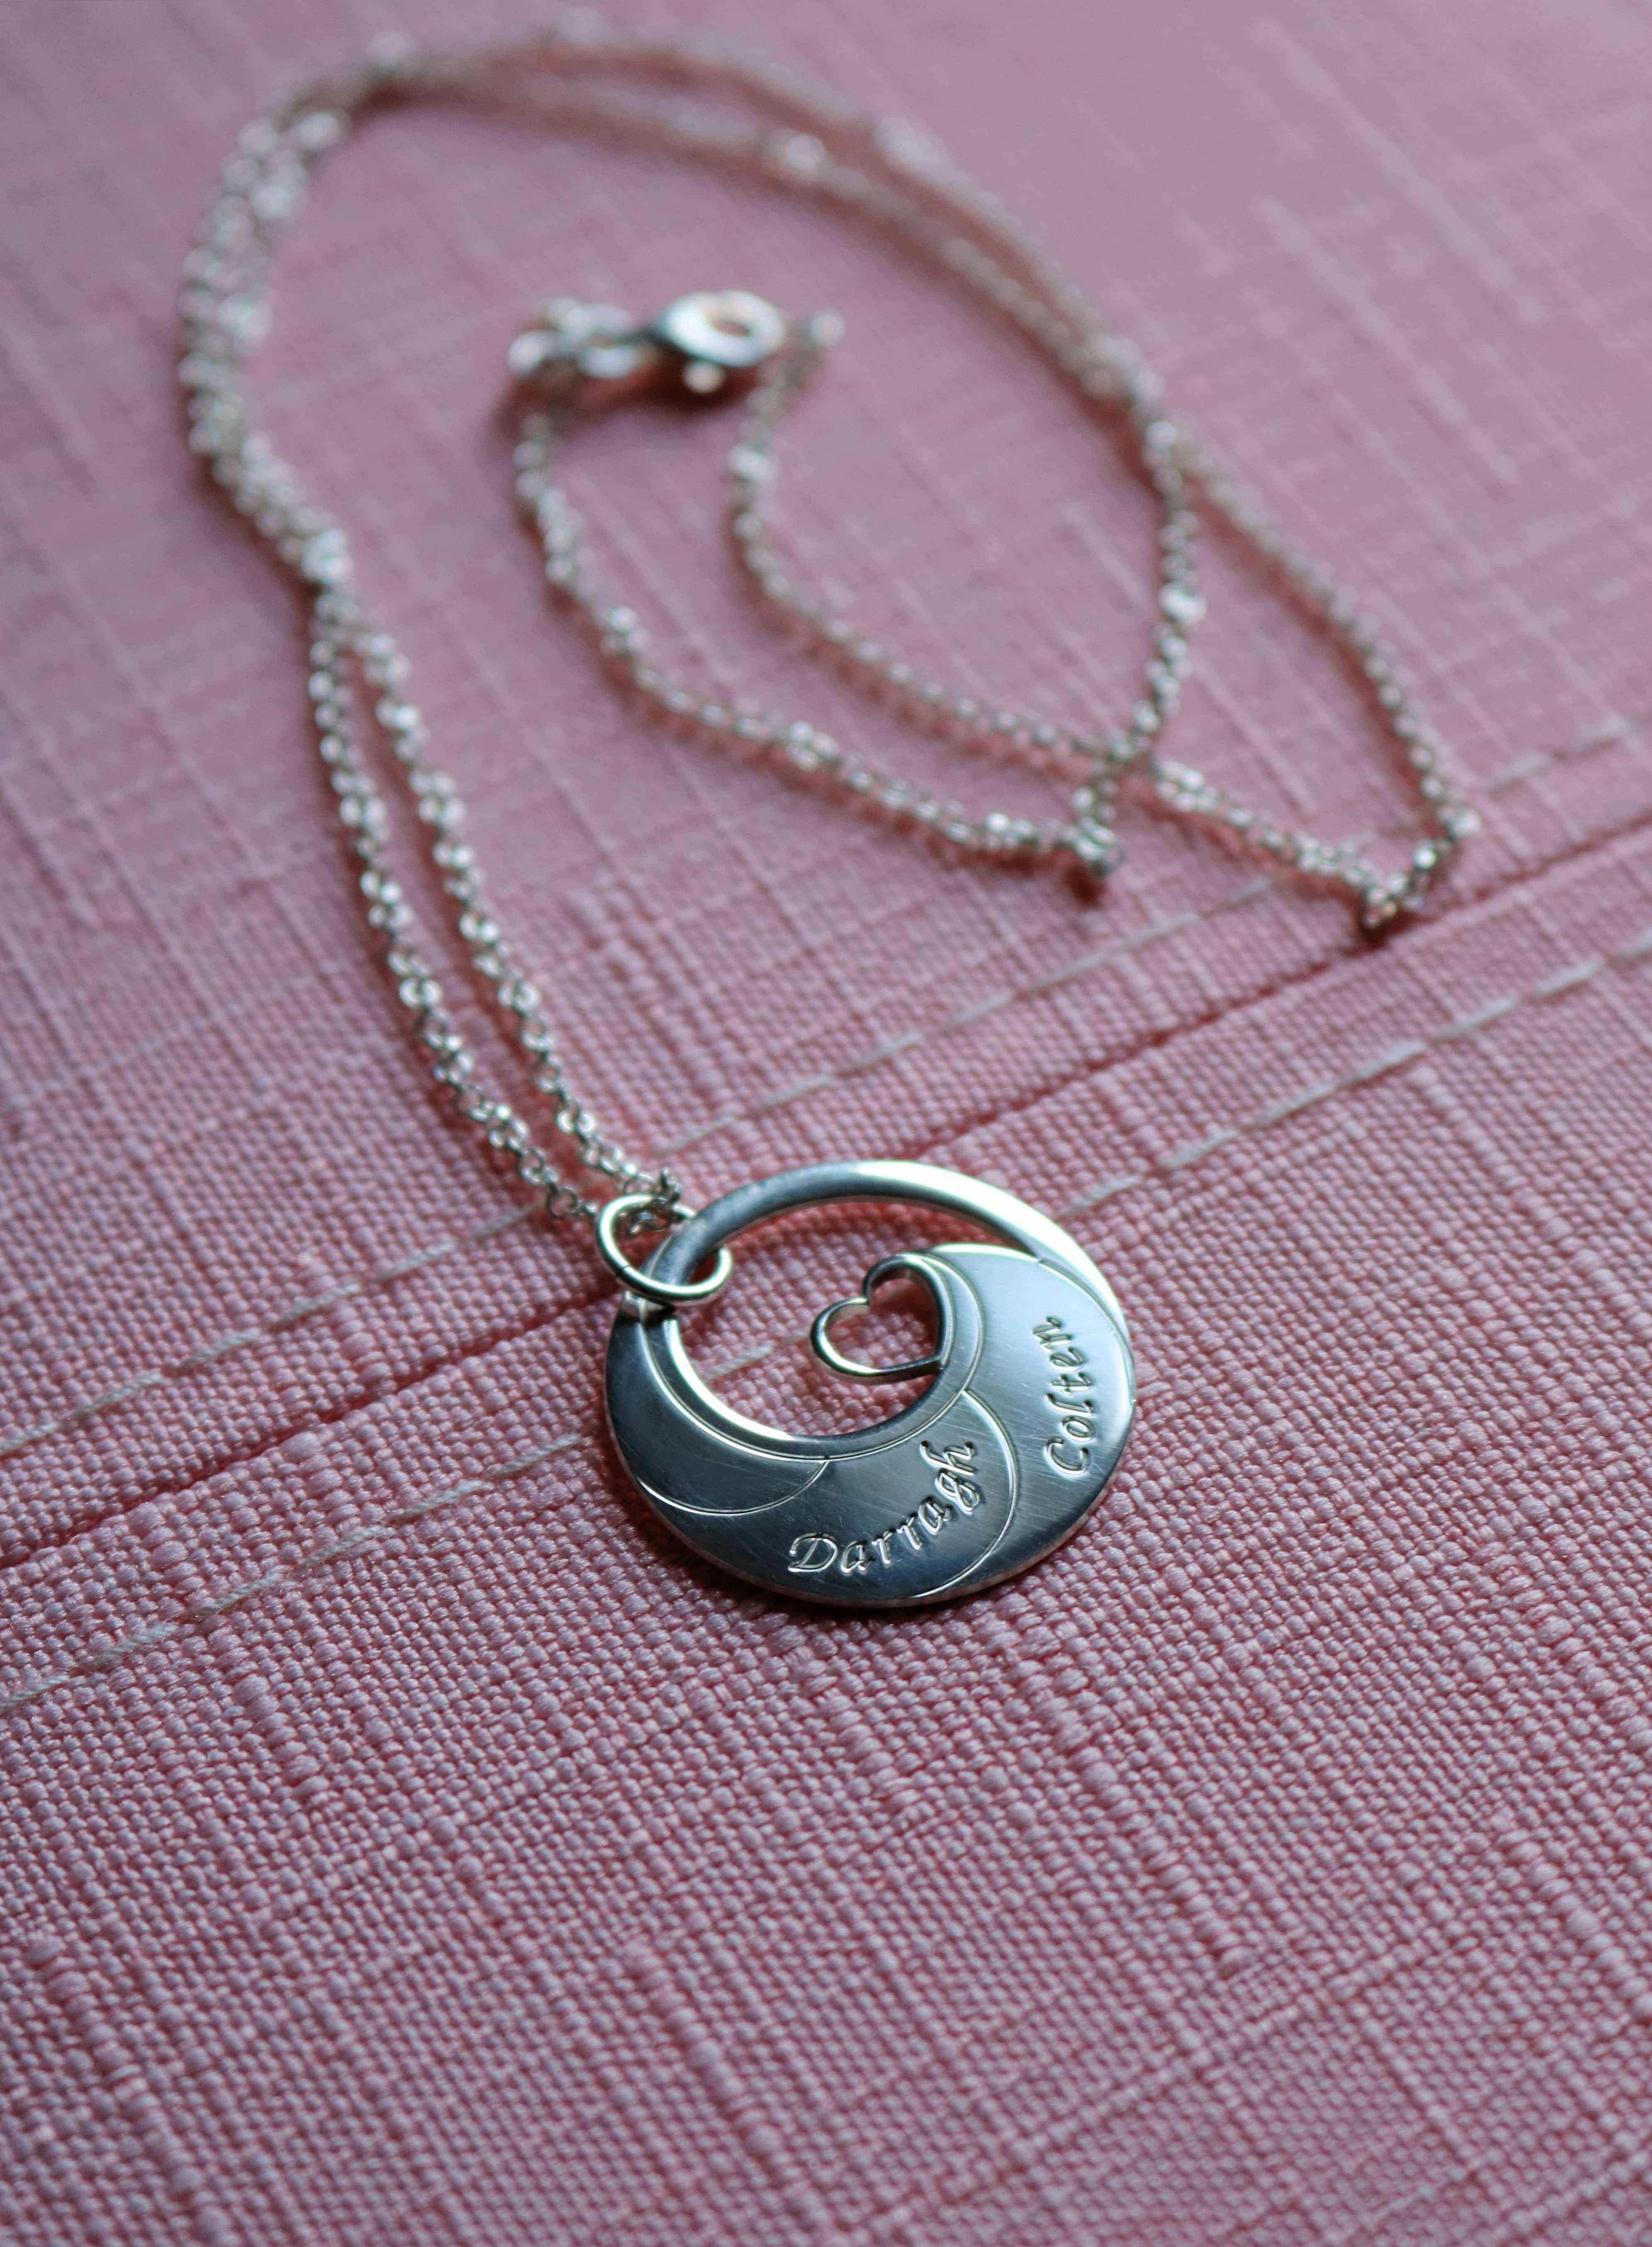 This motherhood necklace featuring engraved names from oNecklace is absolutely gorgeous! It's the perfect gift for any Mom!